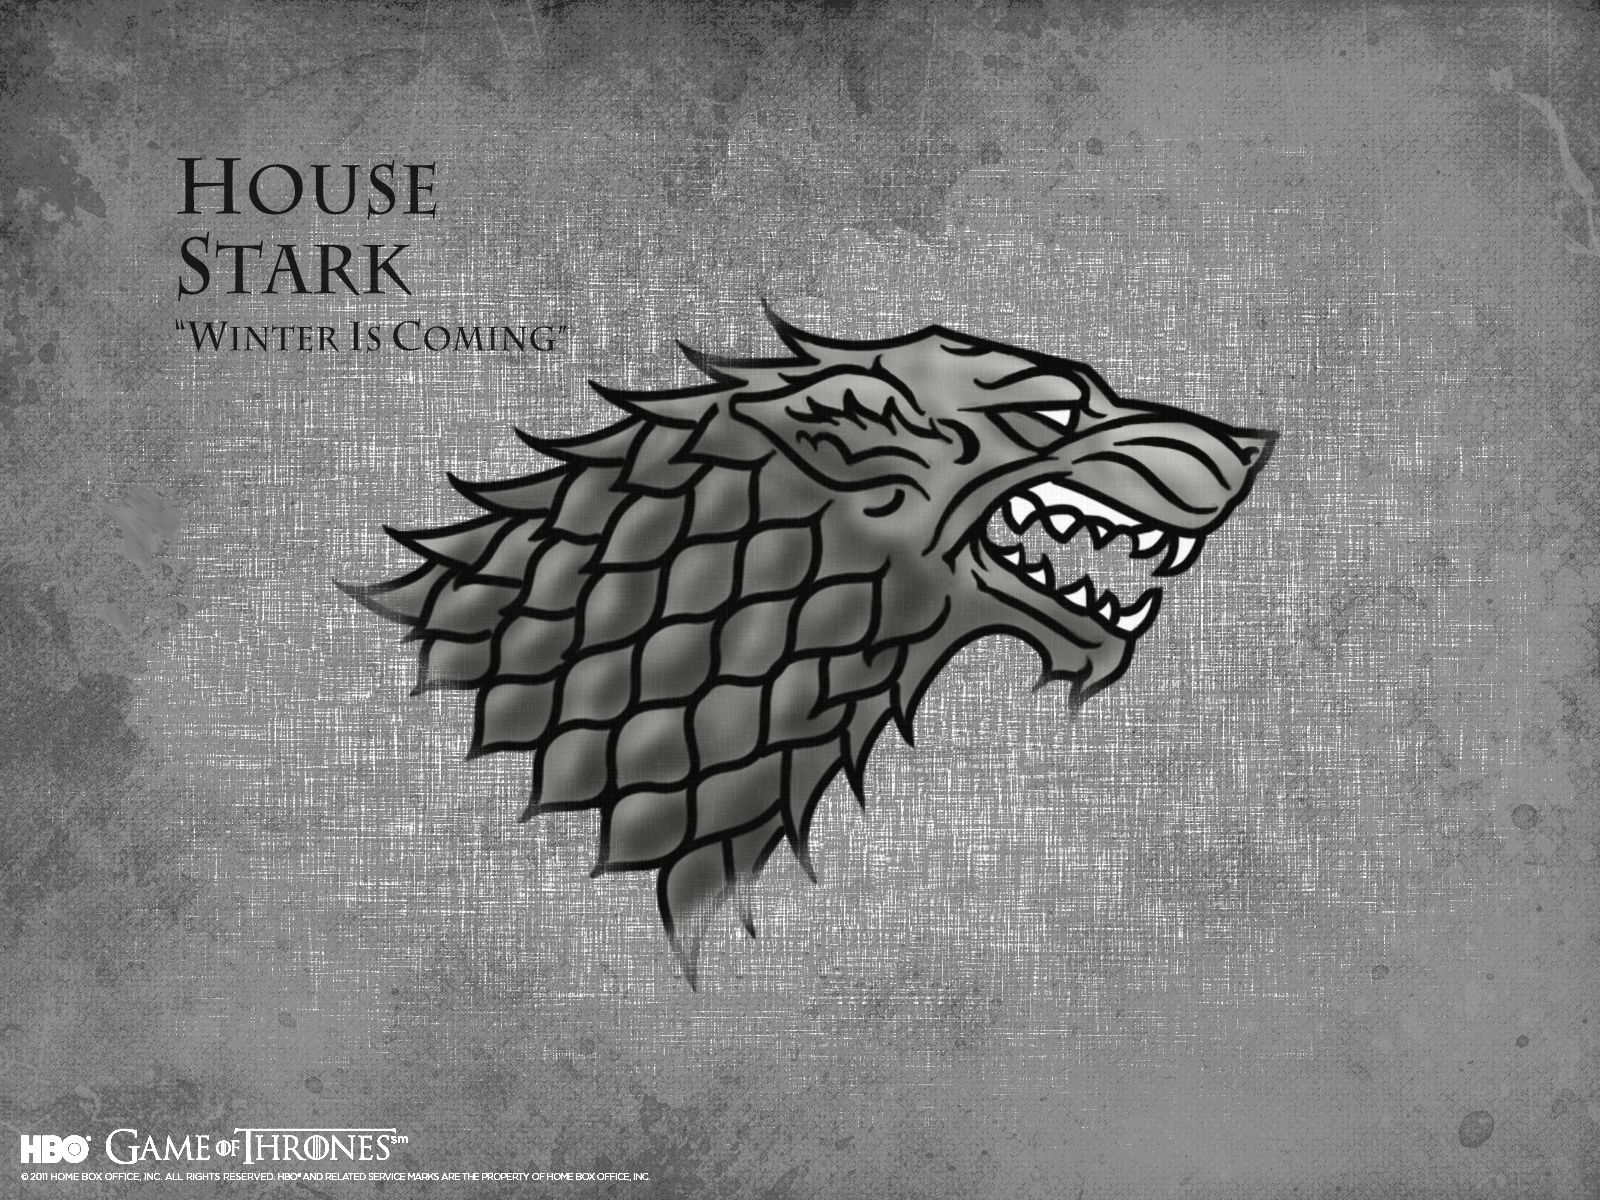 Game Of Thrones Wallpaper House Stark Game Of Thrones Houses House Stark Winter Is Coming Stark